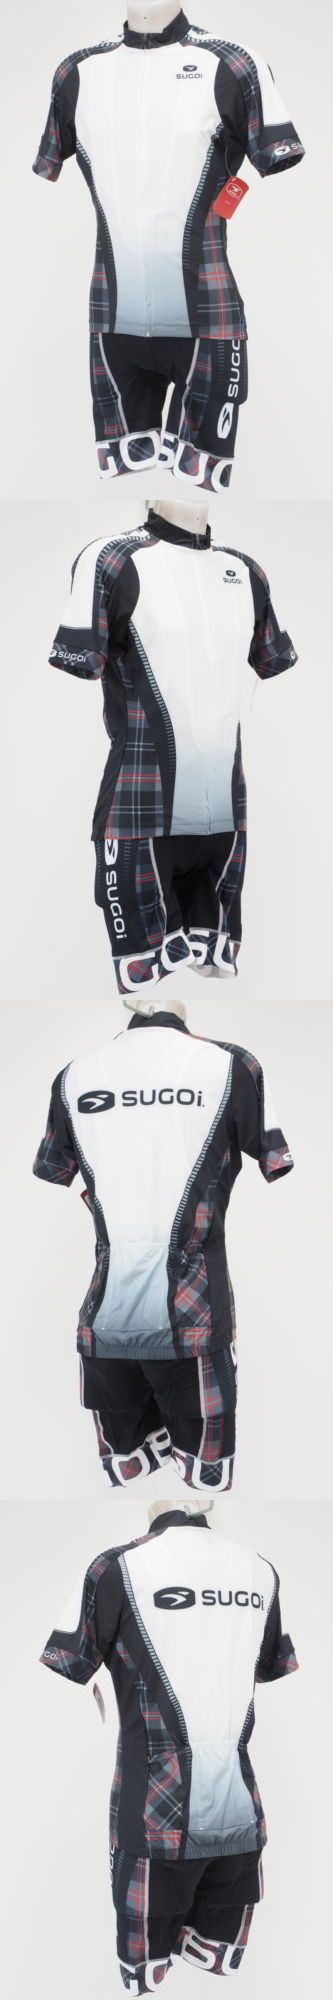 Jersey and Pant Short Sets 177852: New! Sugoi Rs Pro Mens Road Cycling Bib Shorts And Jersey Set White Size Large -> BUY IT NOW ONLY: $64.99 on eBay!